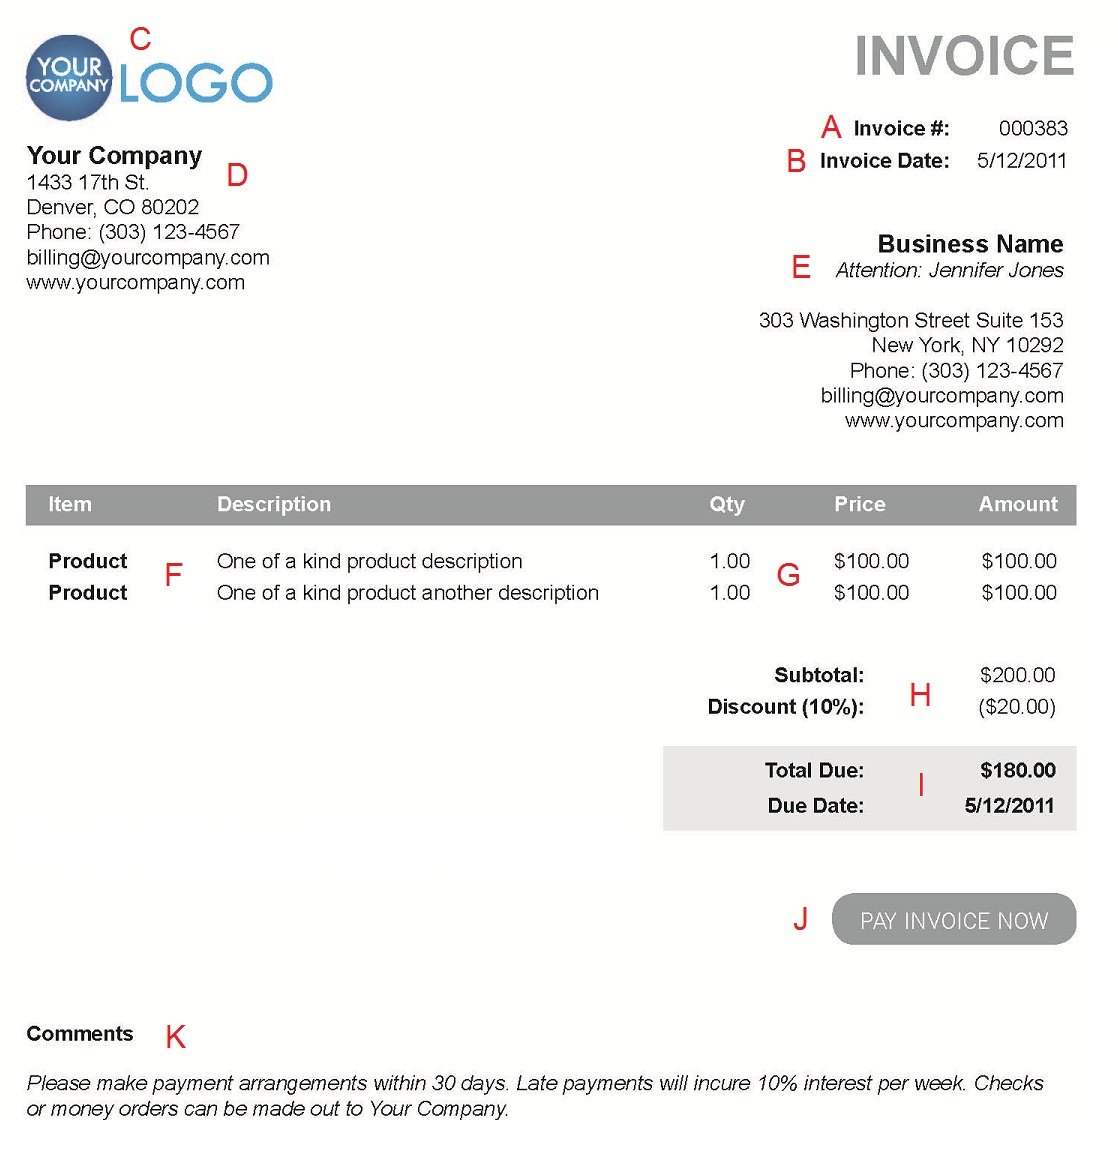 Floobydustus  Stunning The  Different Sections Of An Electronic Payment Invoice With Handsome A  With Breathtaking Dealer Invoice Price Canada Free Also Invoice Payment Template In Addition Invoice Customer And What Is A Invoice Used For As Well As Css Invoice Template Additionally Invoicing Procedure From Paysimplecom With Floobydustus  Handsome The  Different Sections Of An Electronic Payment Invoice With Breathtaking A  And Stunning Dealer Invoice Price Canada Free Also Invoice Payment Template In Addition Invoice Customer From Paysimplecom